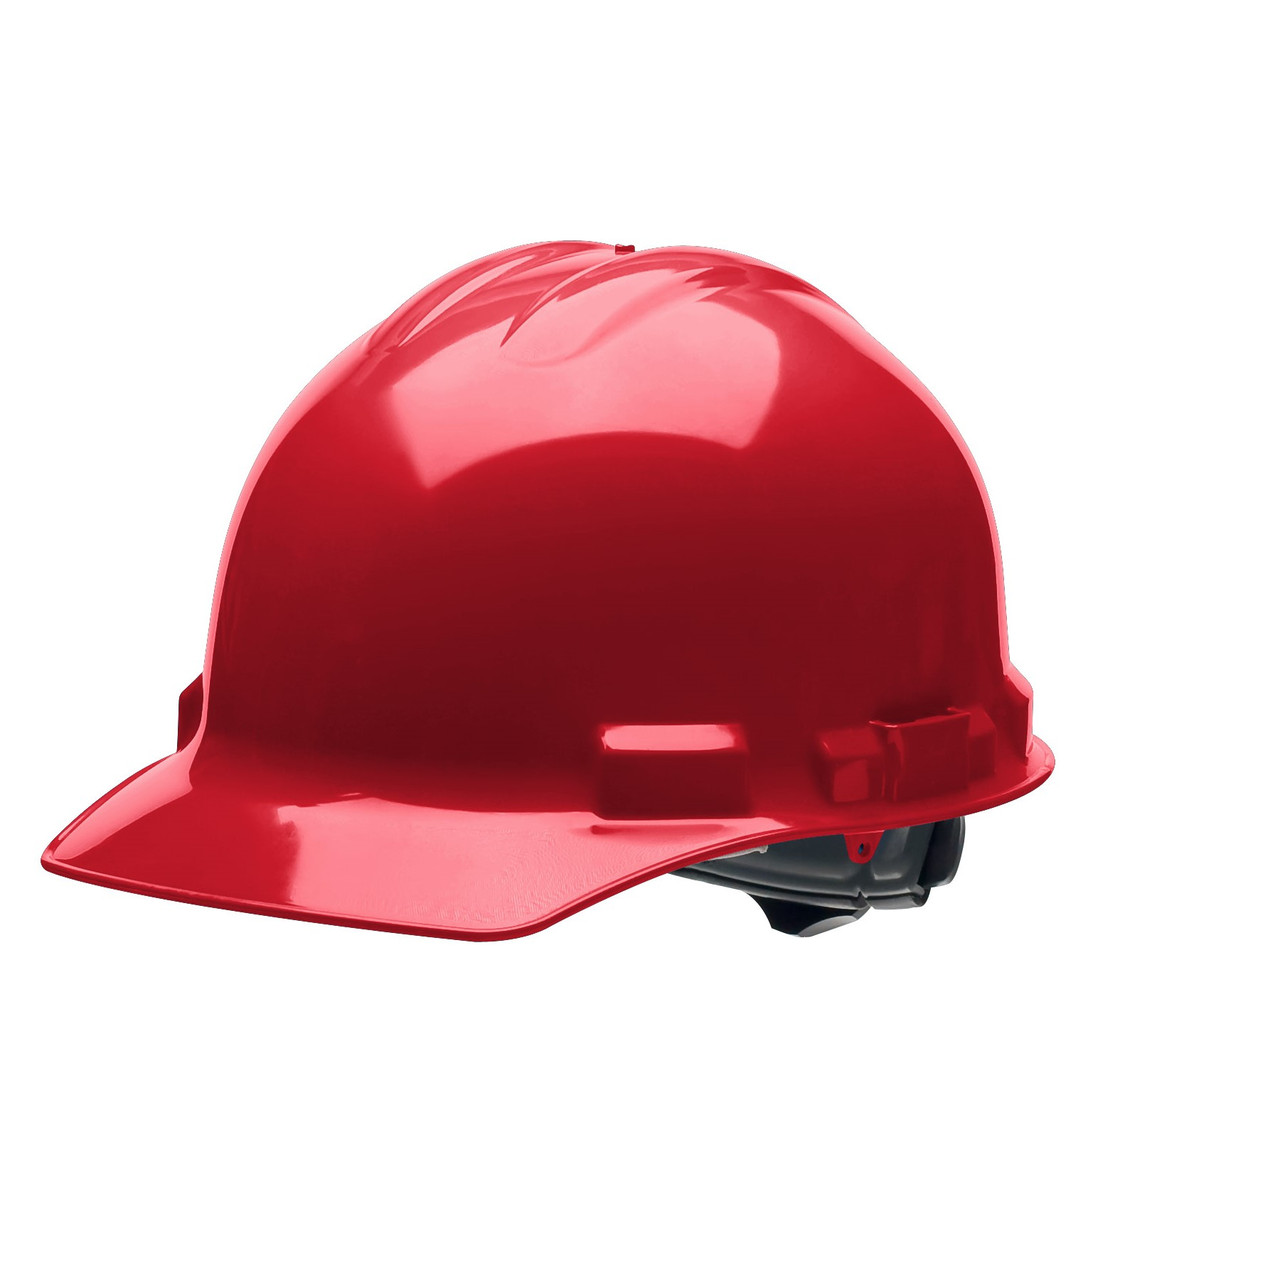 Red Hard Hat Helmet Style Made in the USA